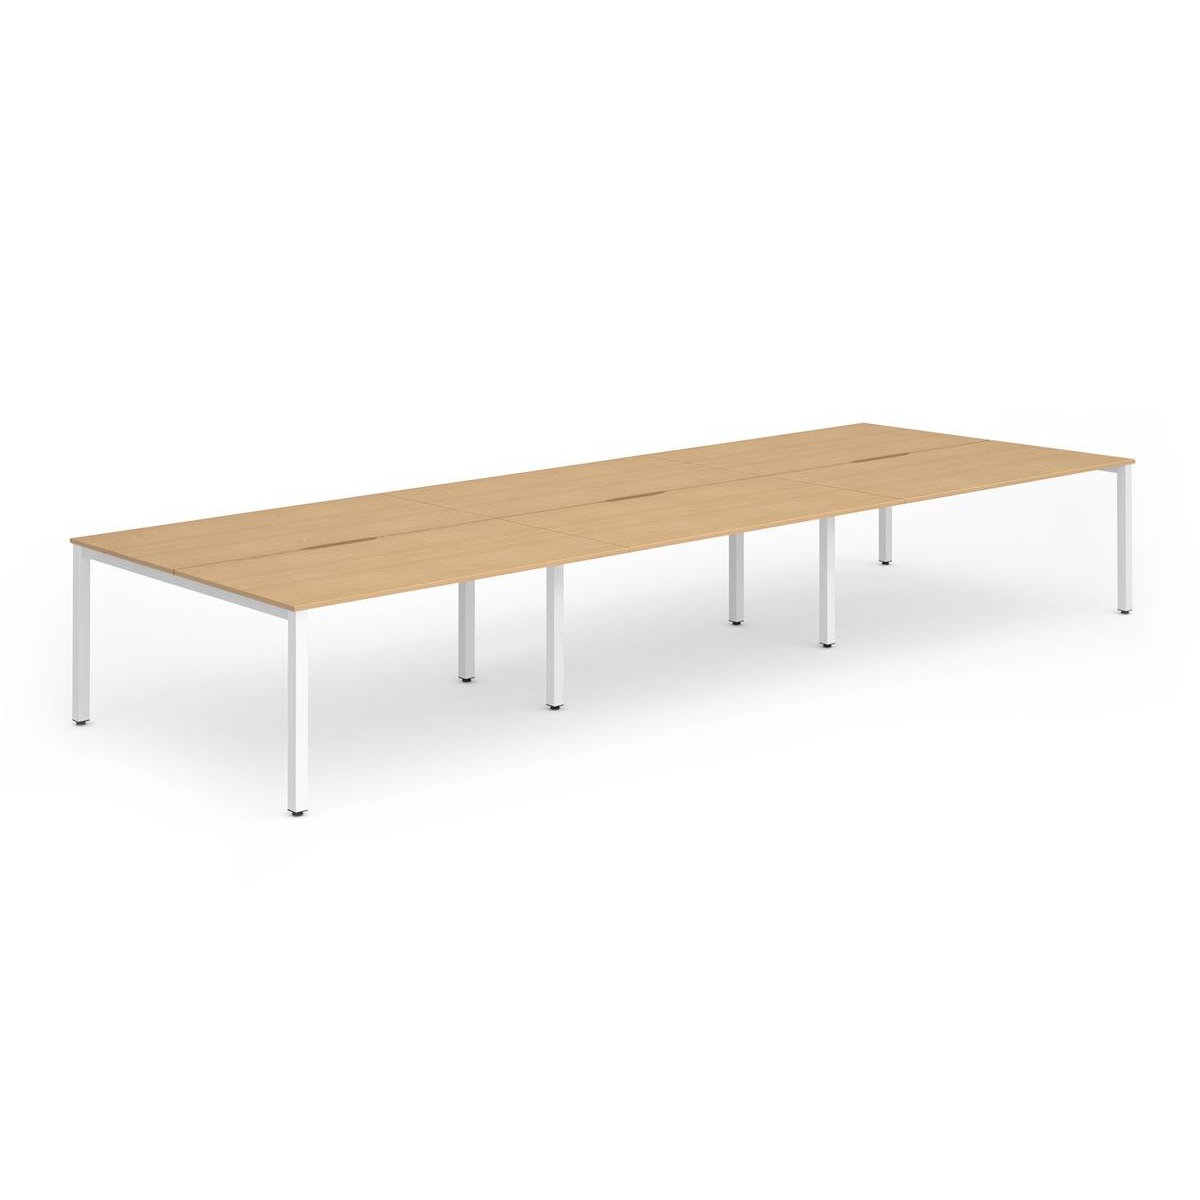 Trexus Bench Desk 6 Person Back to Back Configuration White Leg 2800x1600mm Beech Ref BE277